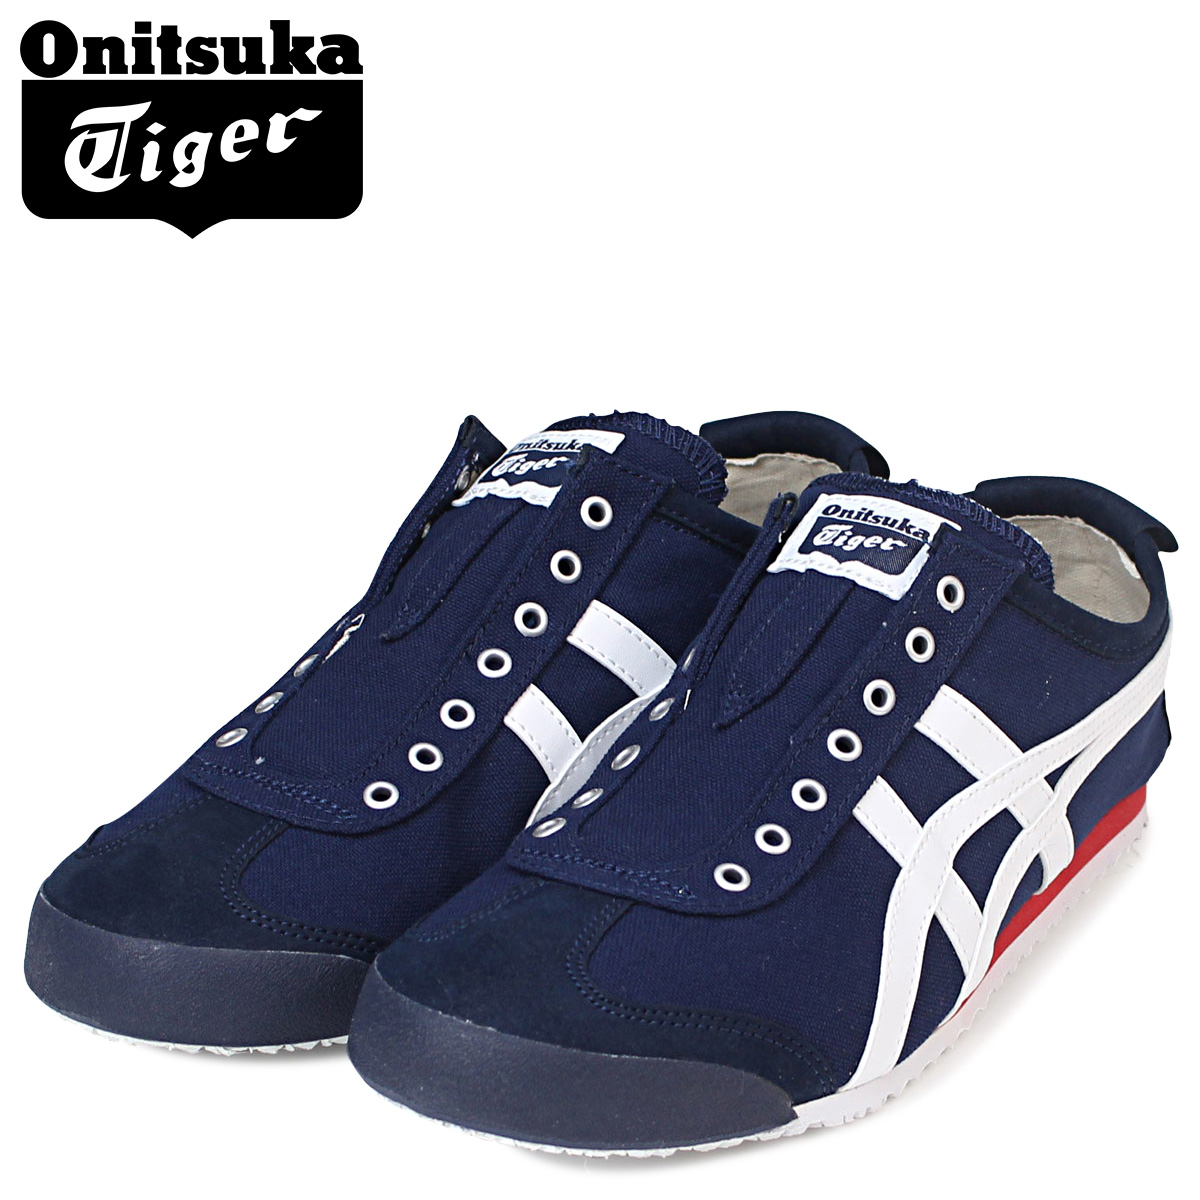 best loved 909f8 59cd6 Onitsuka tiger Onitsuka Tiger Mexico 66 slip-ons men gap Dis sneakers  MEXICO 66 SLIP ON D3K0N 5099 navy [8/1 reentry load]